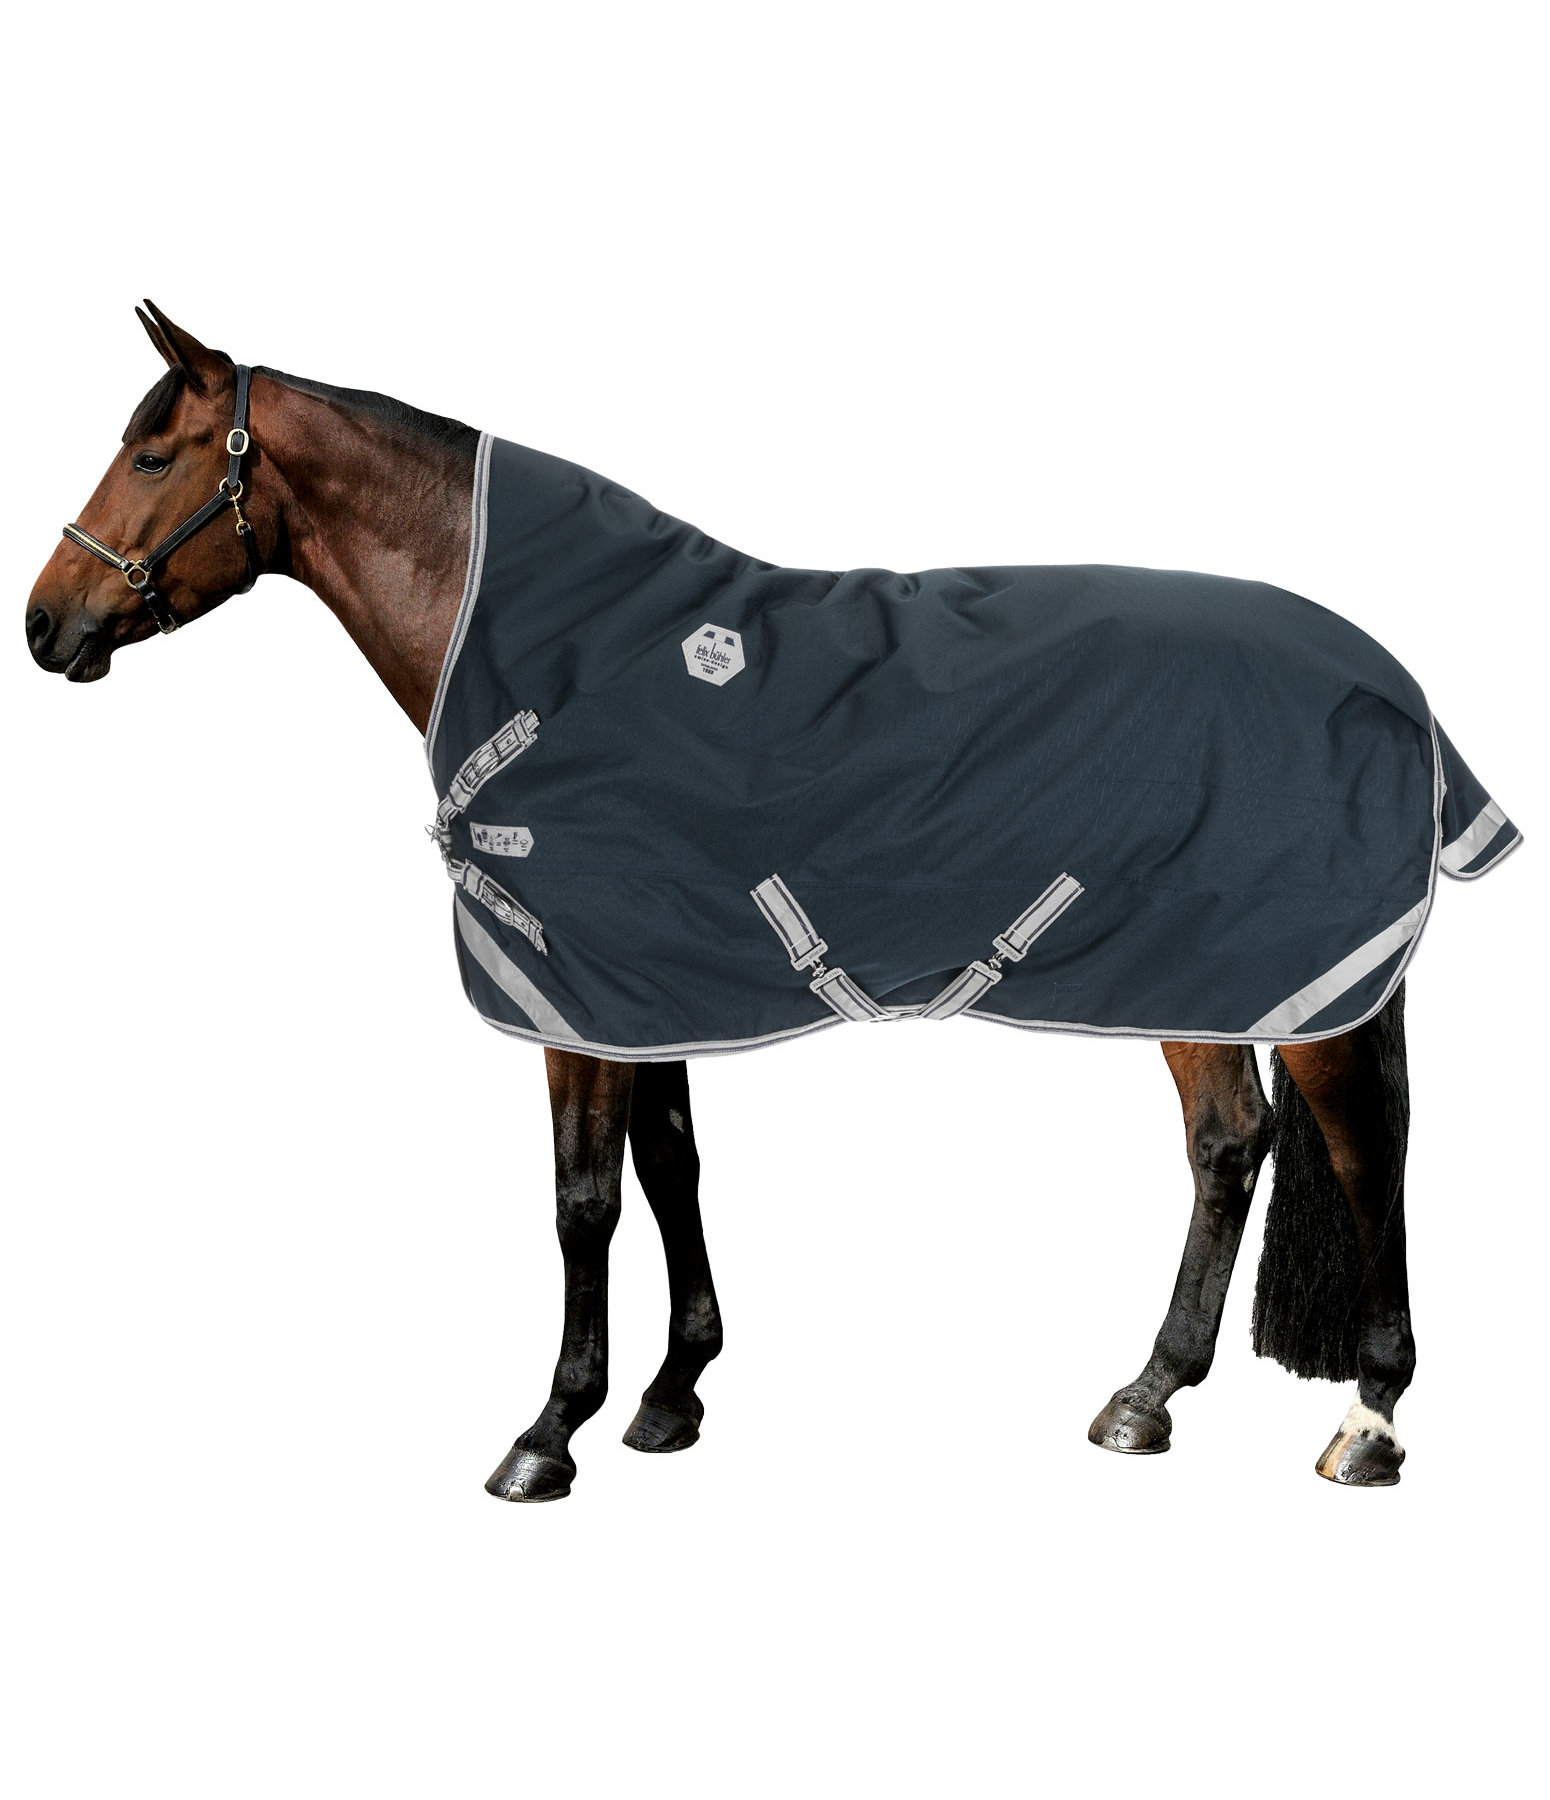 High Neck Turnout Rug Paddock Reflective, 100g